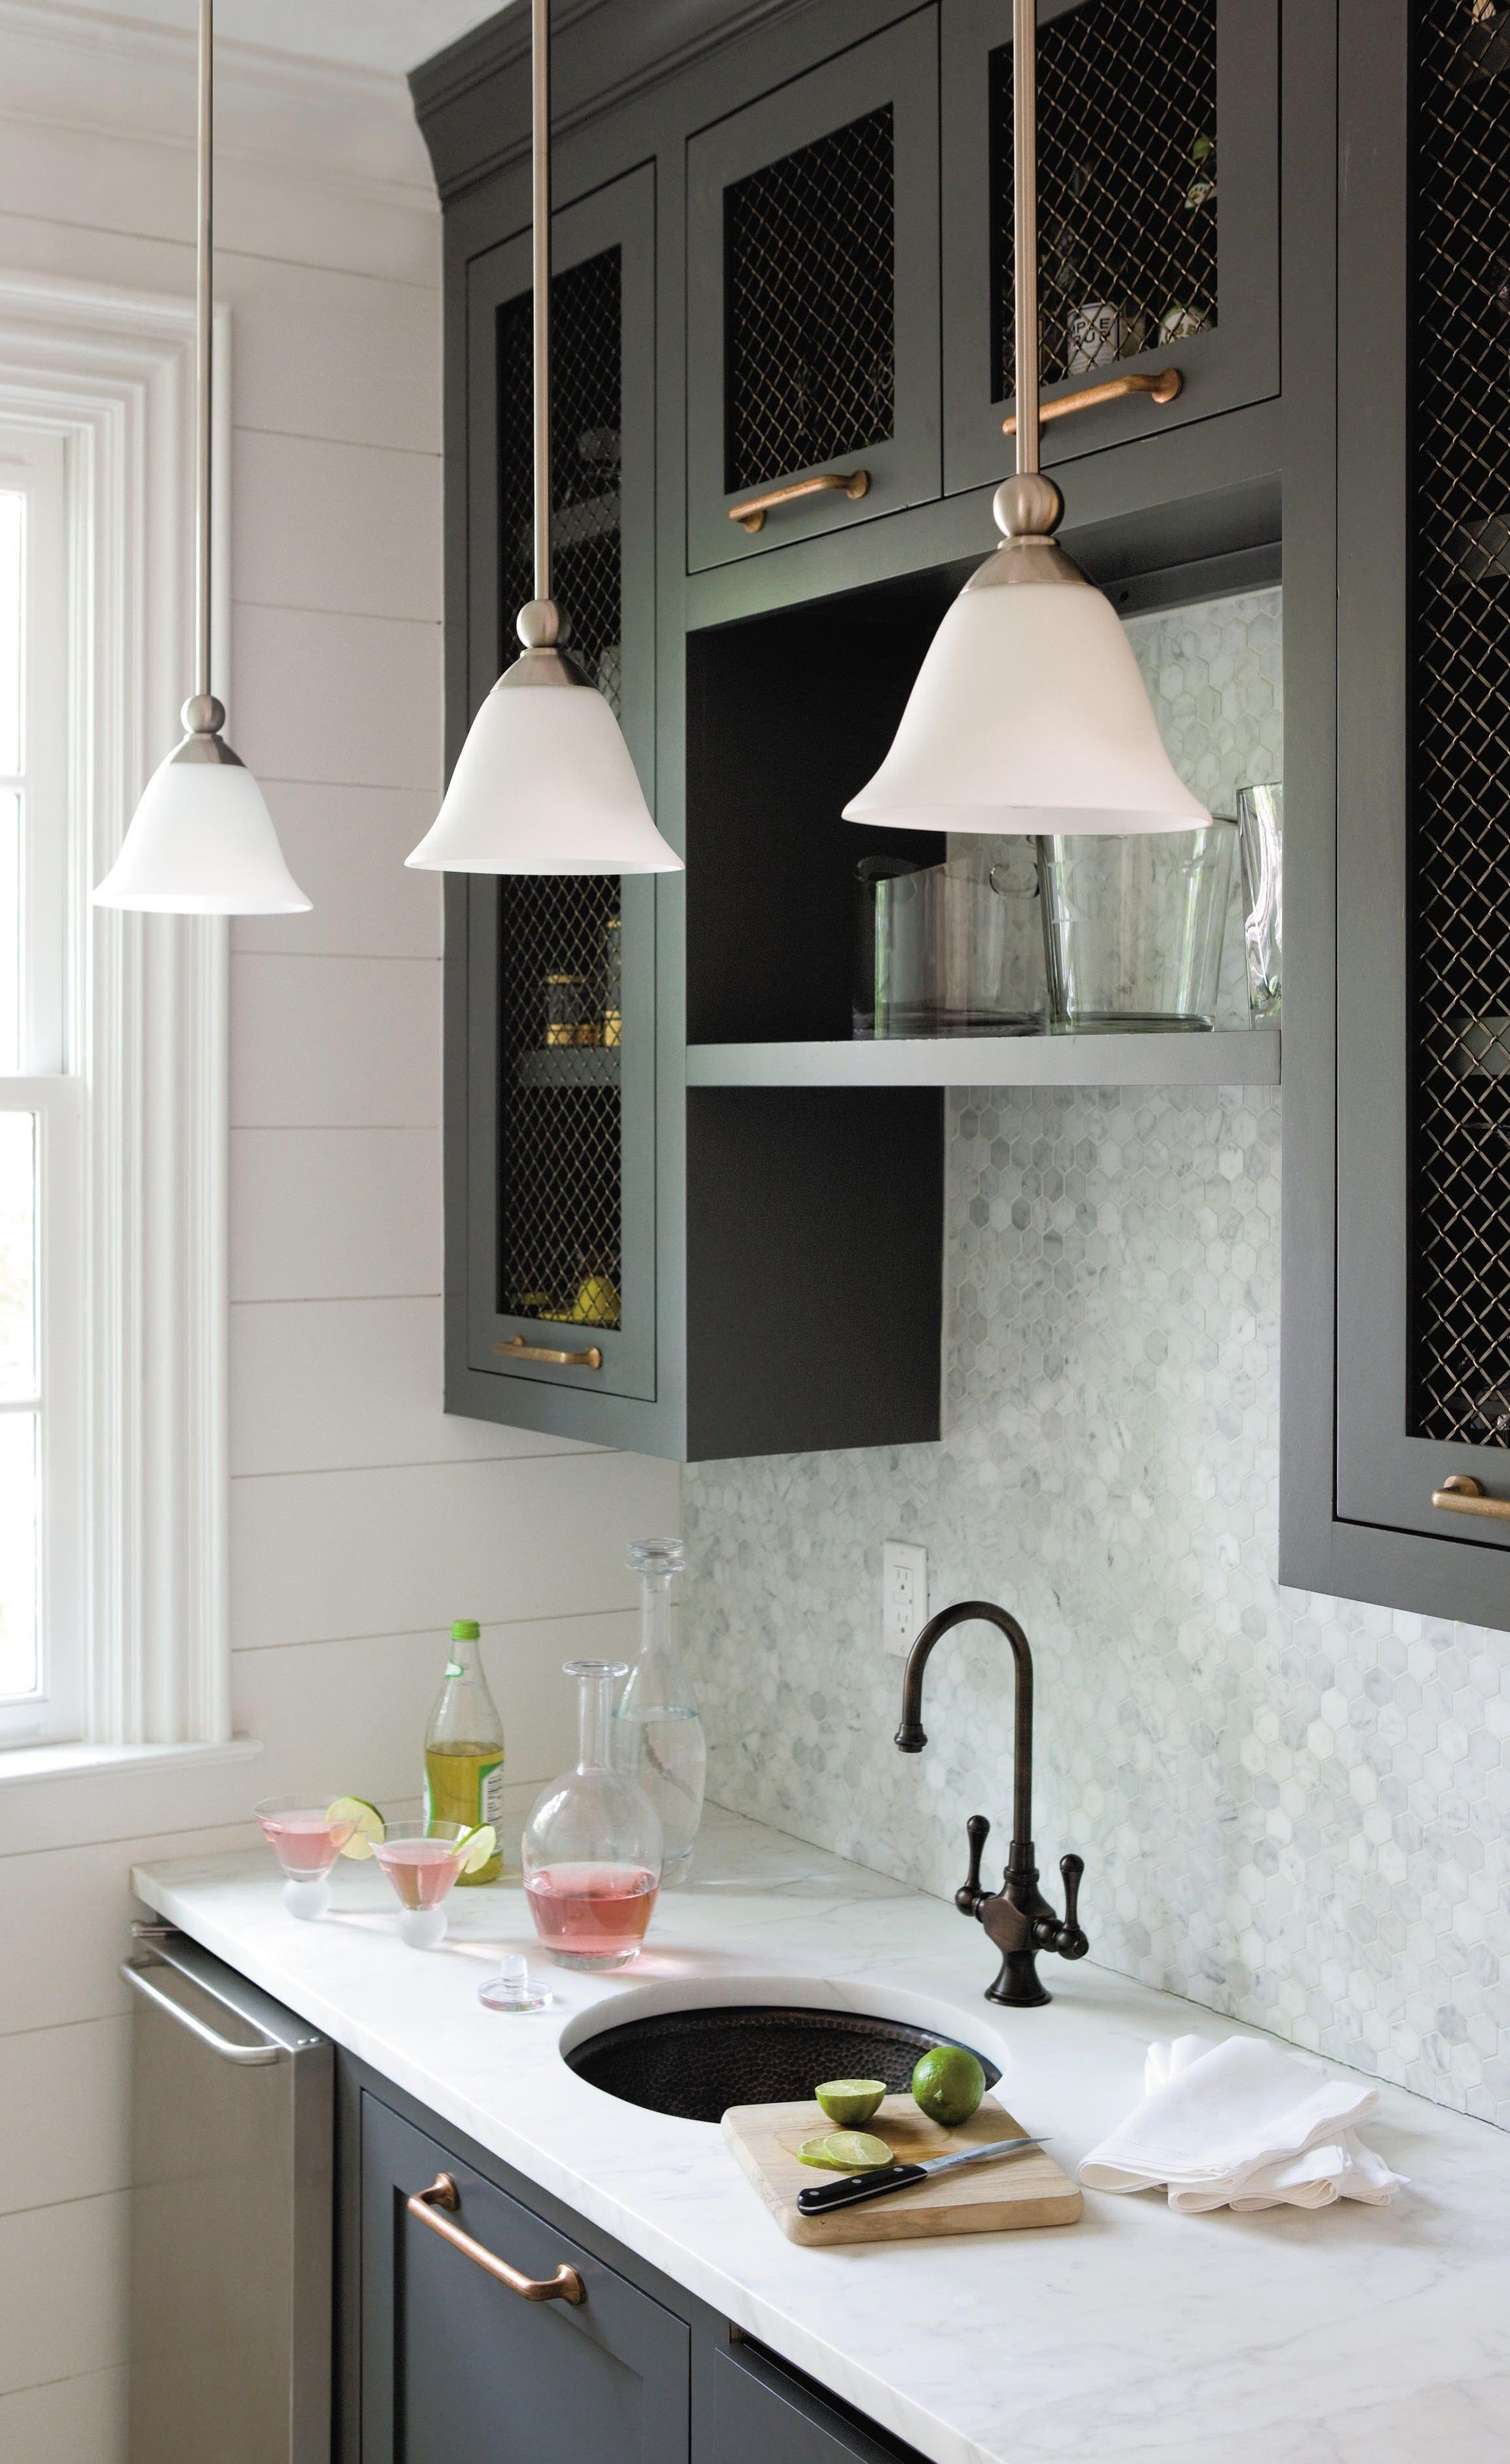 Mini Pendant with Opal Glass Shade Provides Affordable Solution for Kitchen Counter Lighting #graycabinets